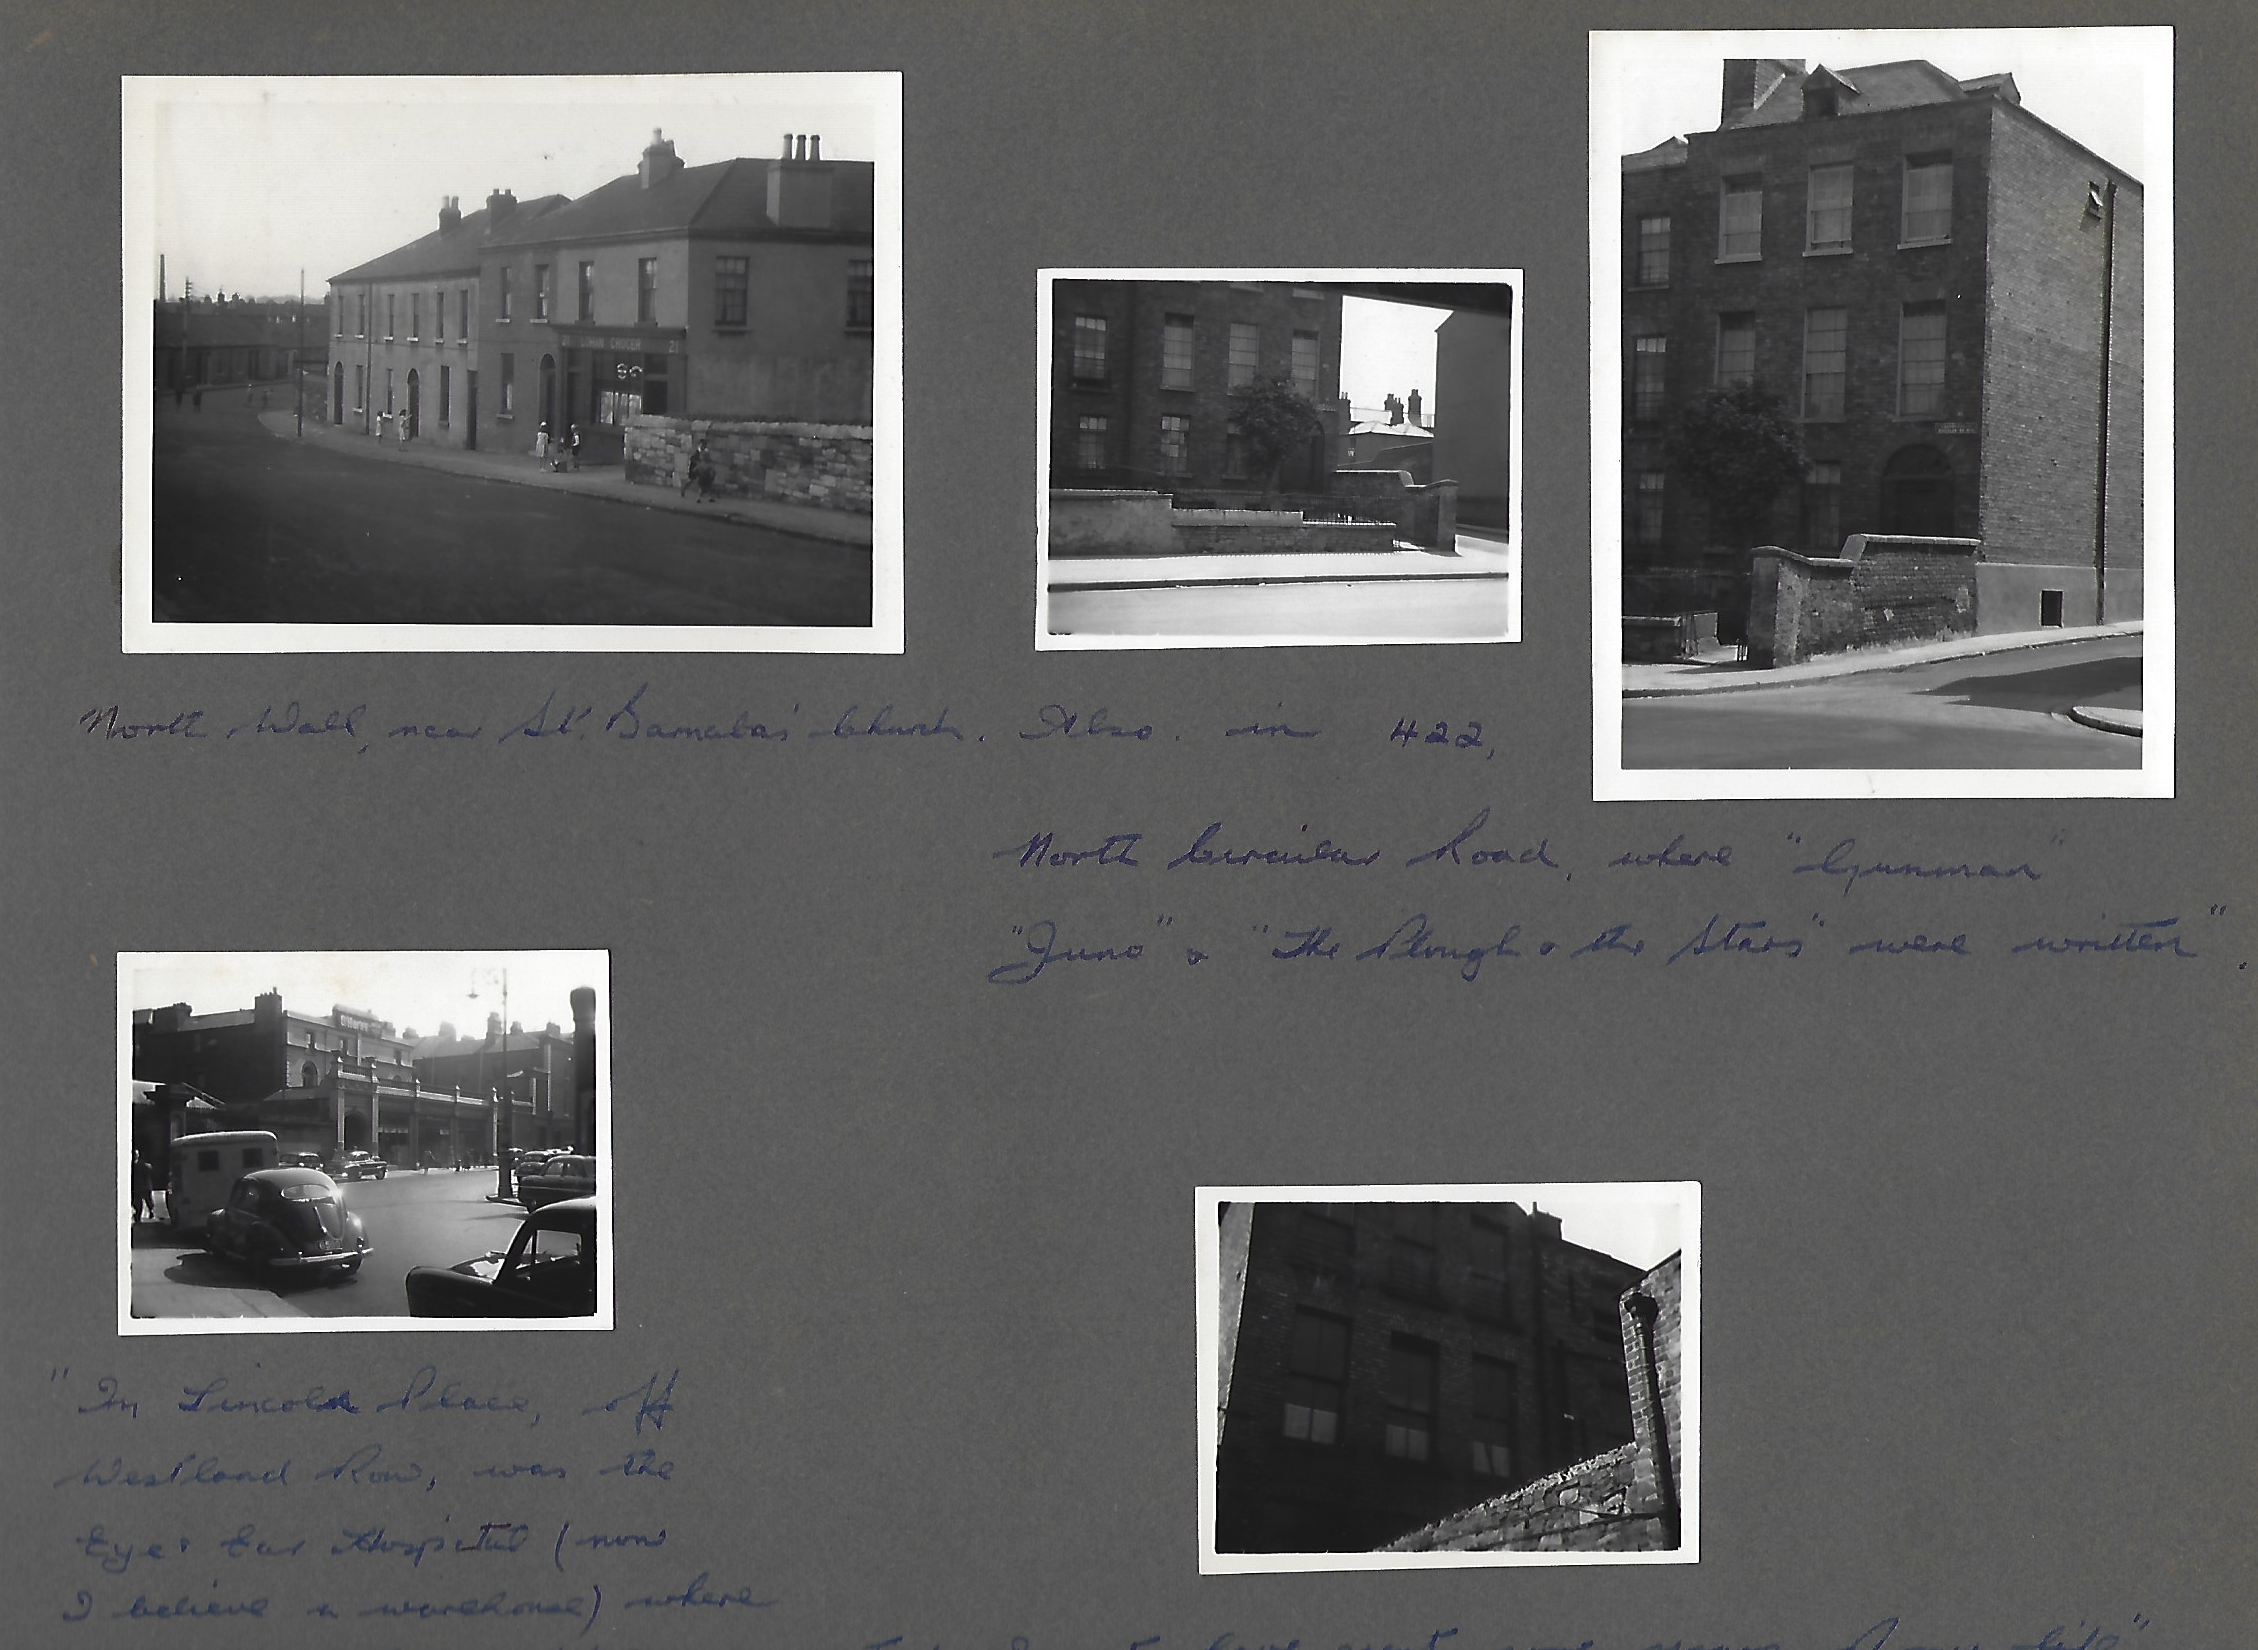 David Butcher's photo album of Dublin 1956 p. 3